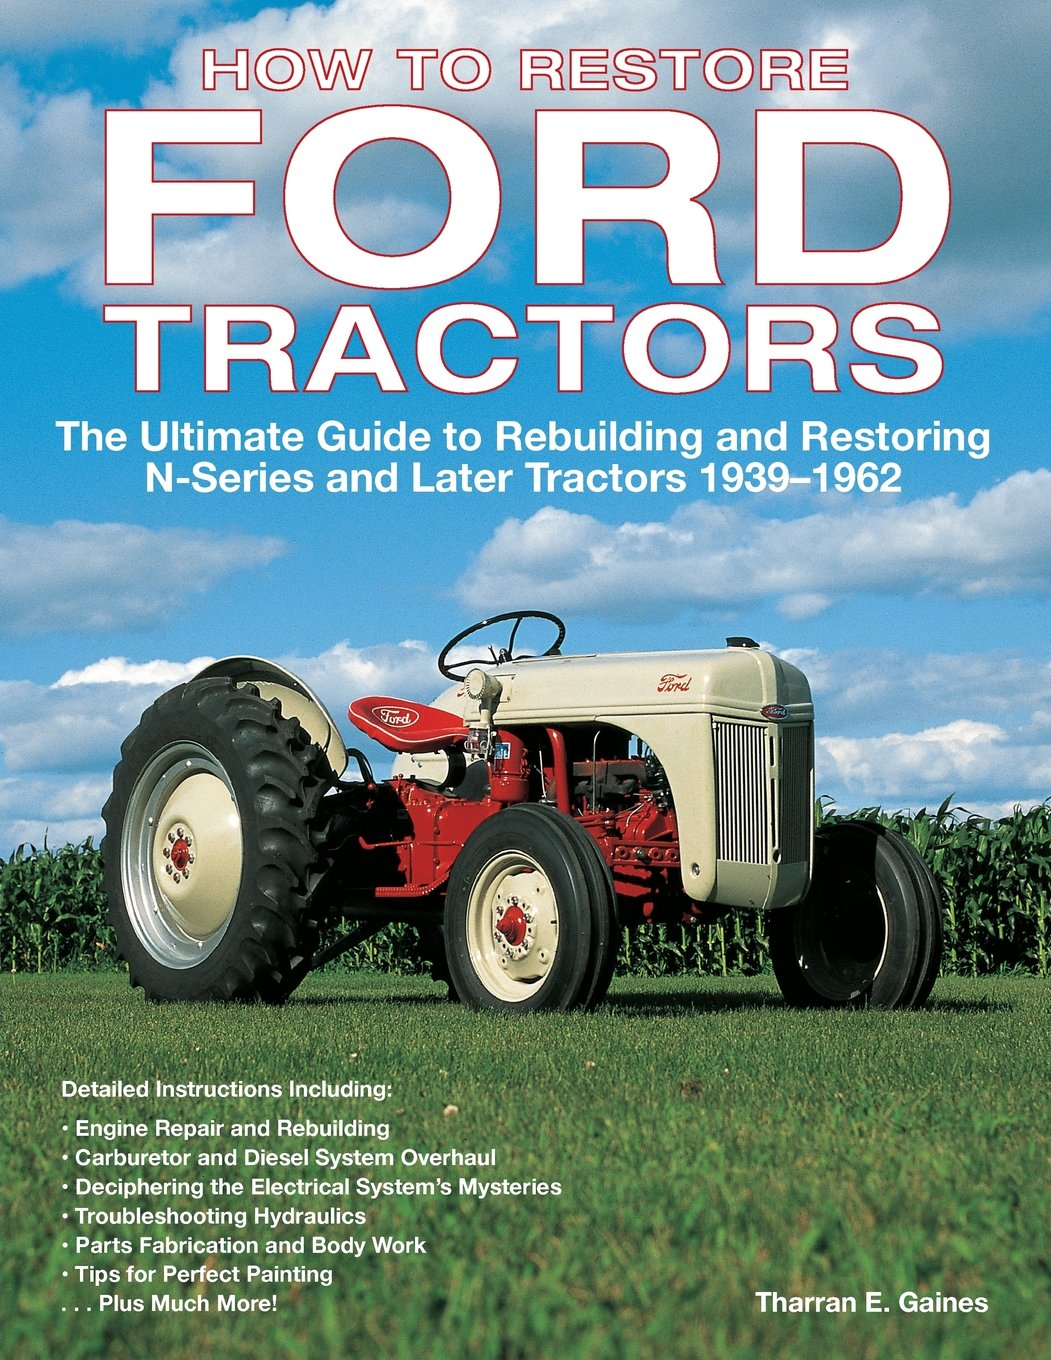 How to restore ford tractors the ultimate guide to rebuilding and restoring n series and later tractors 1939 1962 tharran e gaines 9780760326206